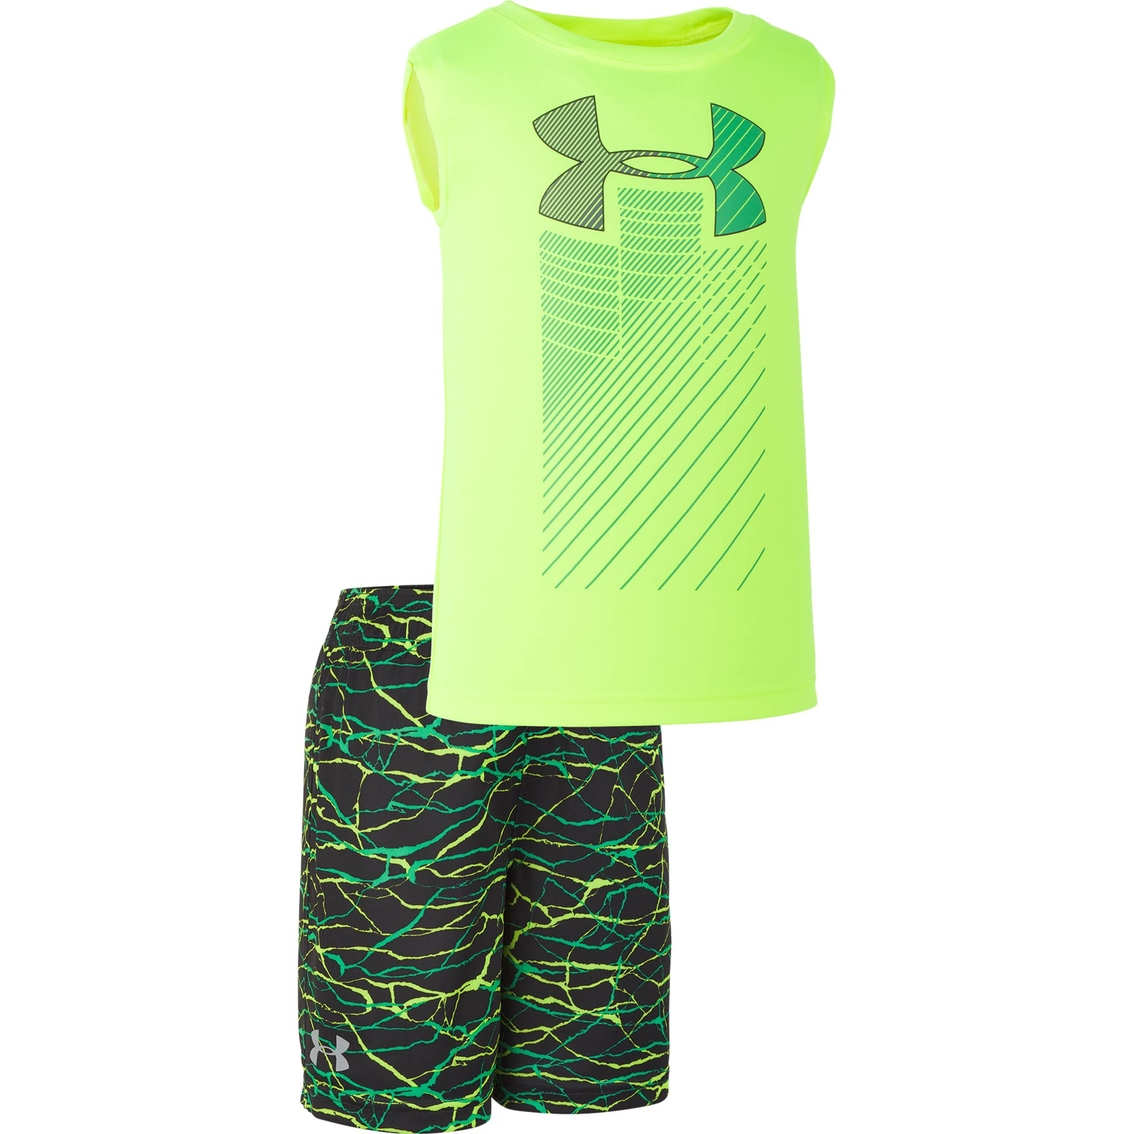 Under Armour 2T 3T 4T Fish Outfit Set Shorts Shirt NEW